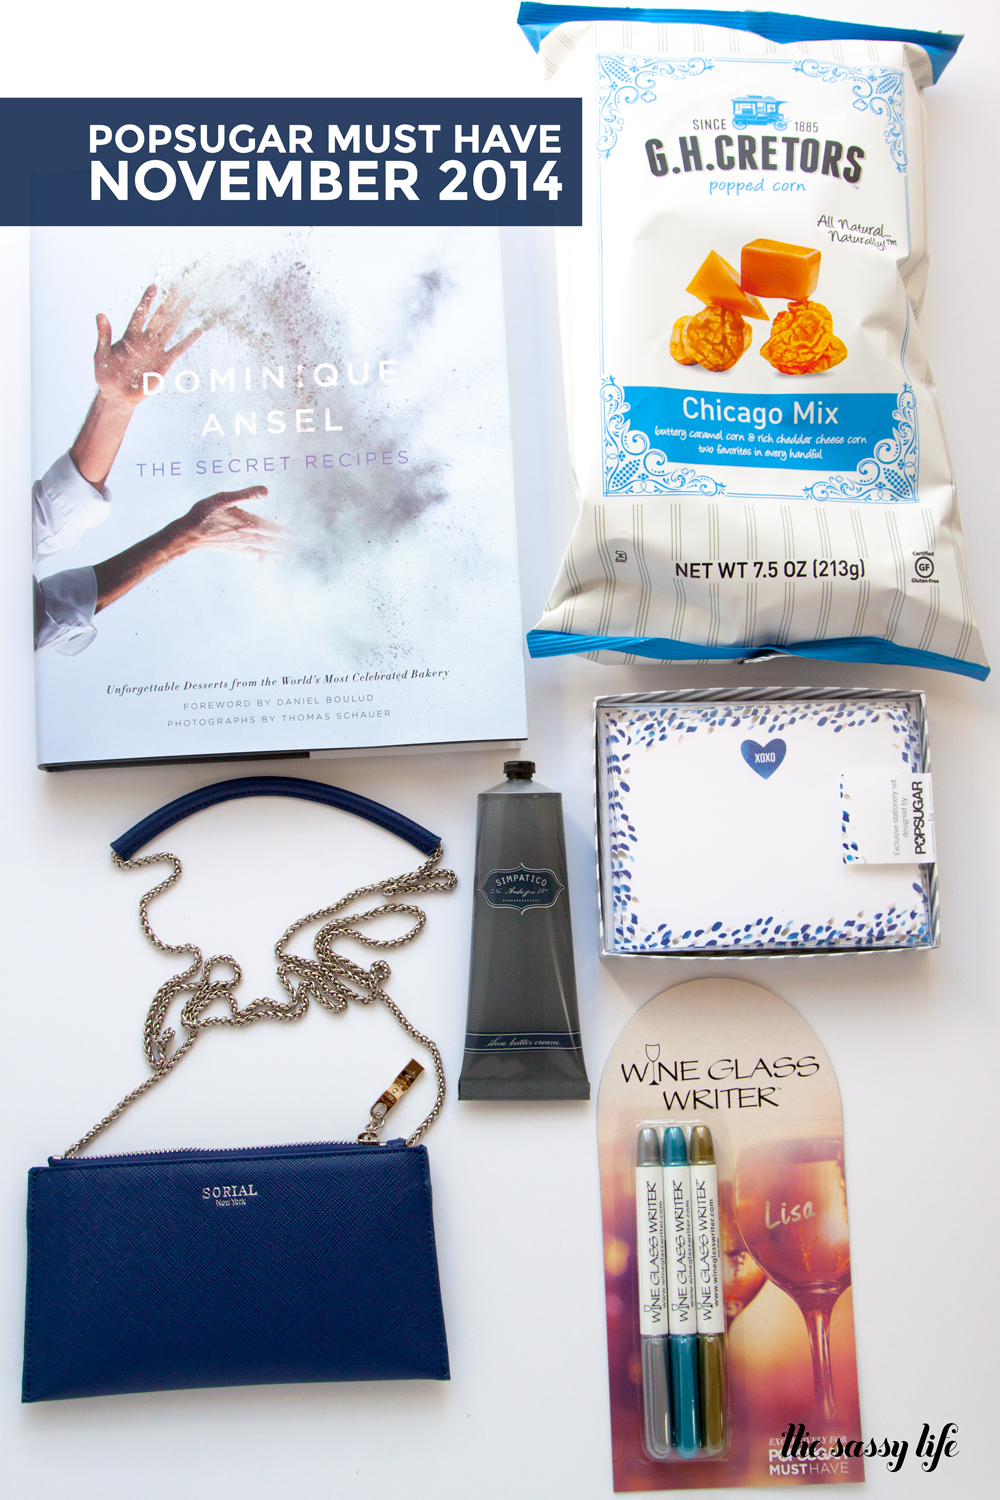 Popsugar Must Have Resort Box Review: PopSugar Must Have, November 2014